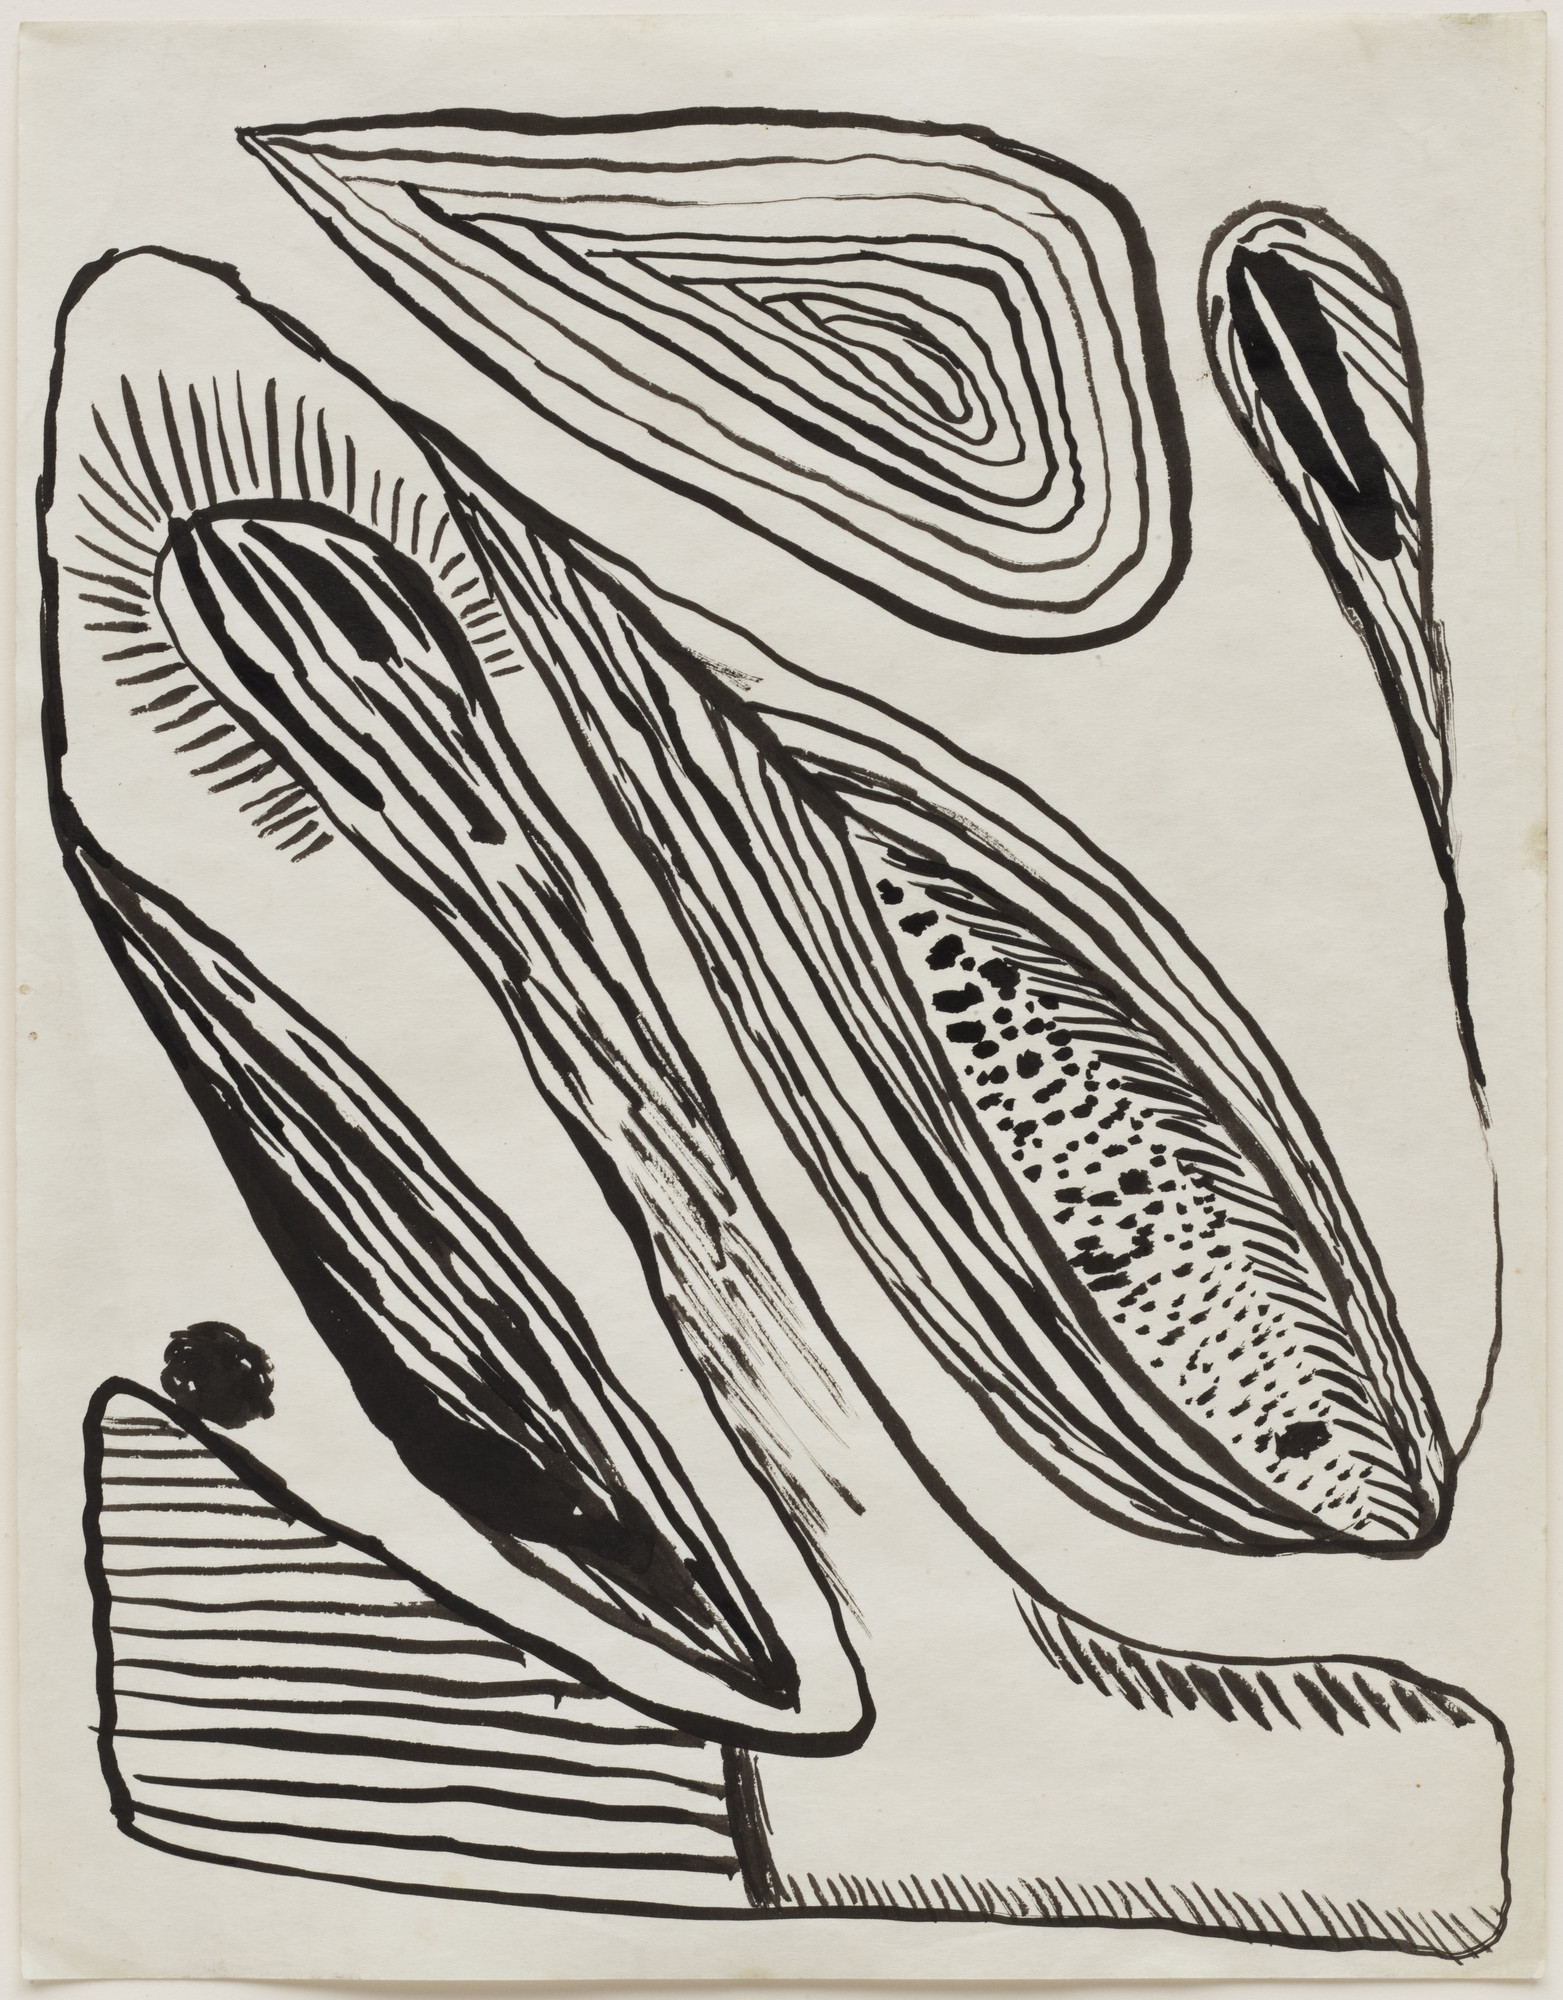 Louise Bourgeois. Untitled. 1950